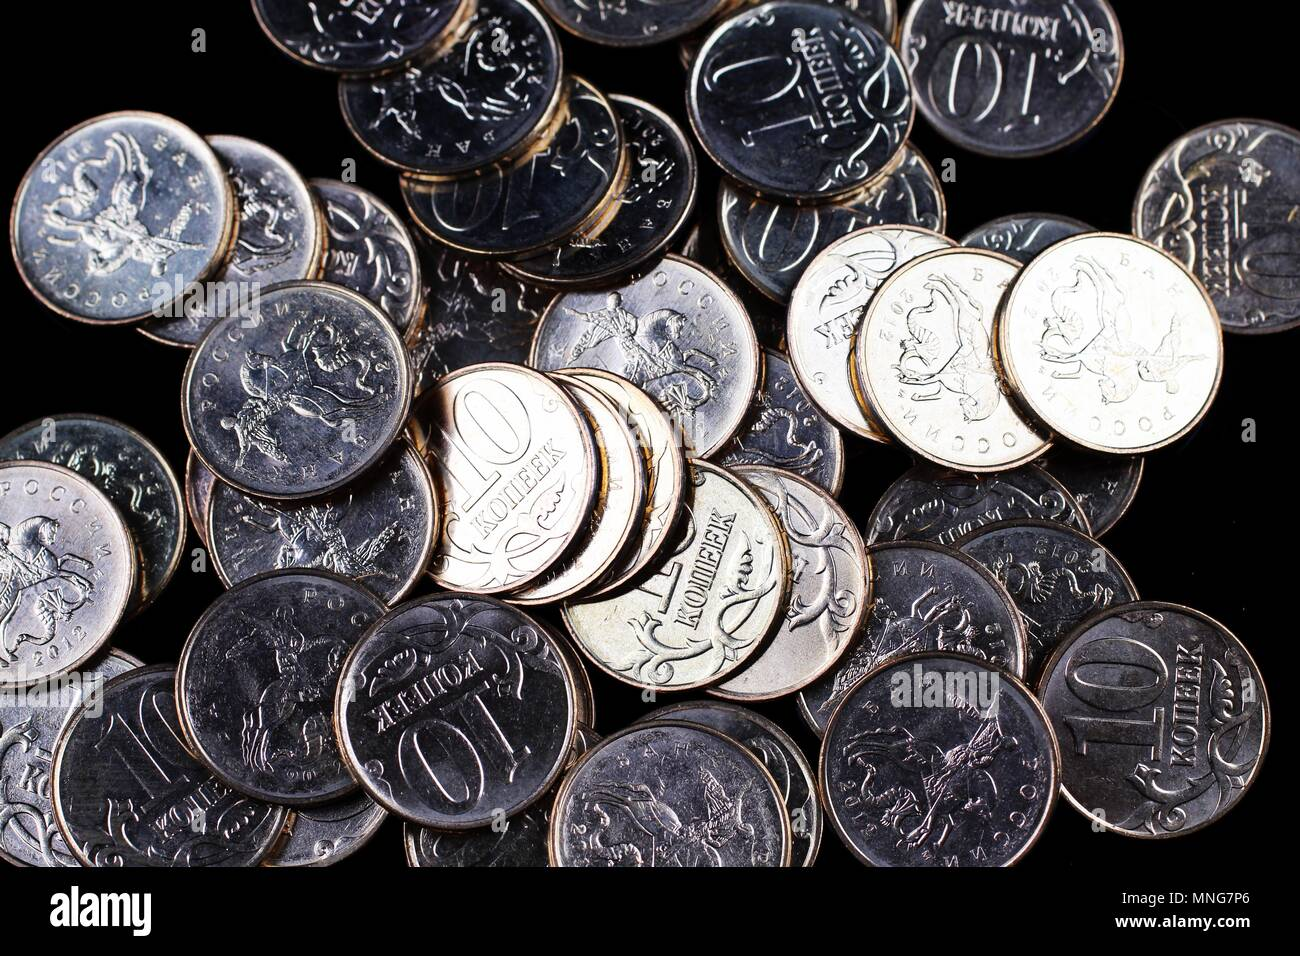 A close up of a pile of brass Russian ten kopek coins in a pile - Stock Image